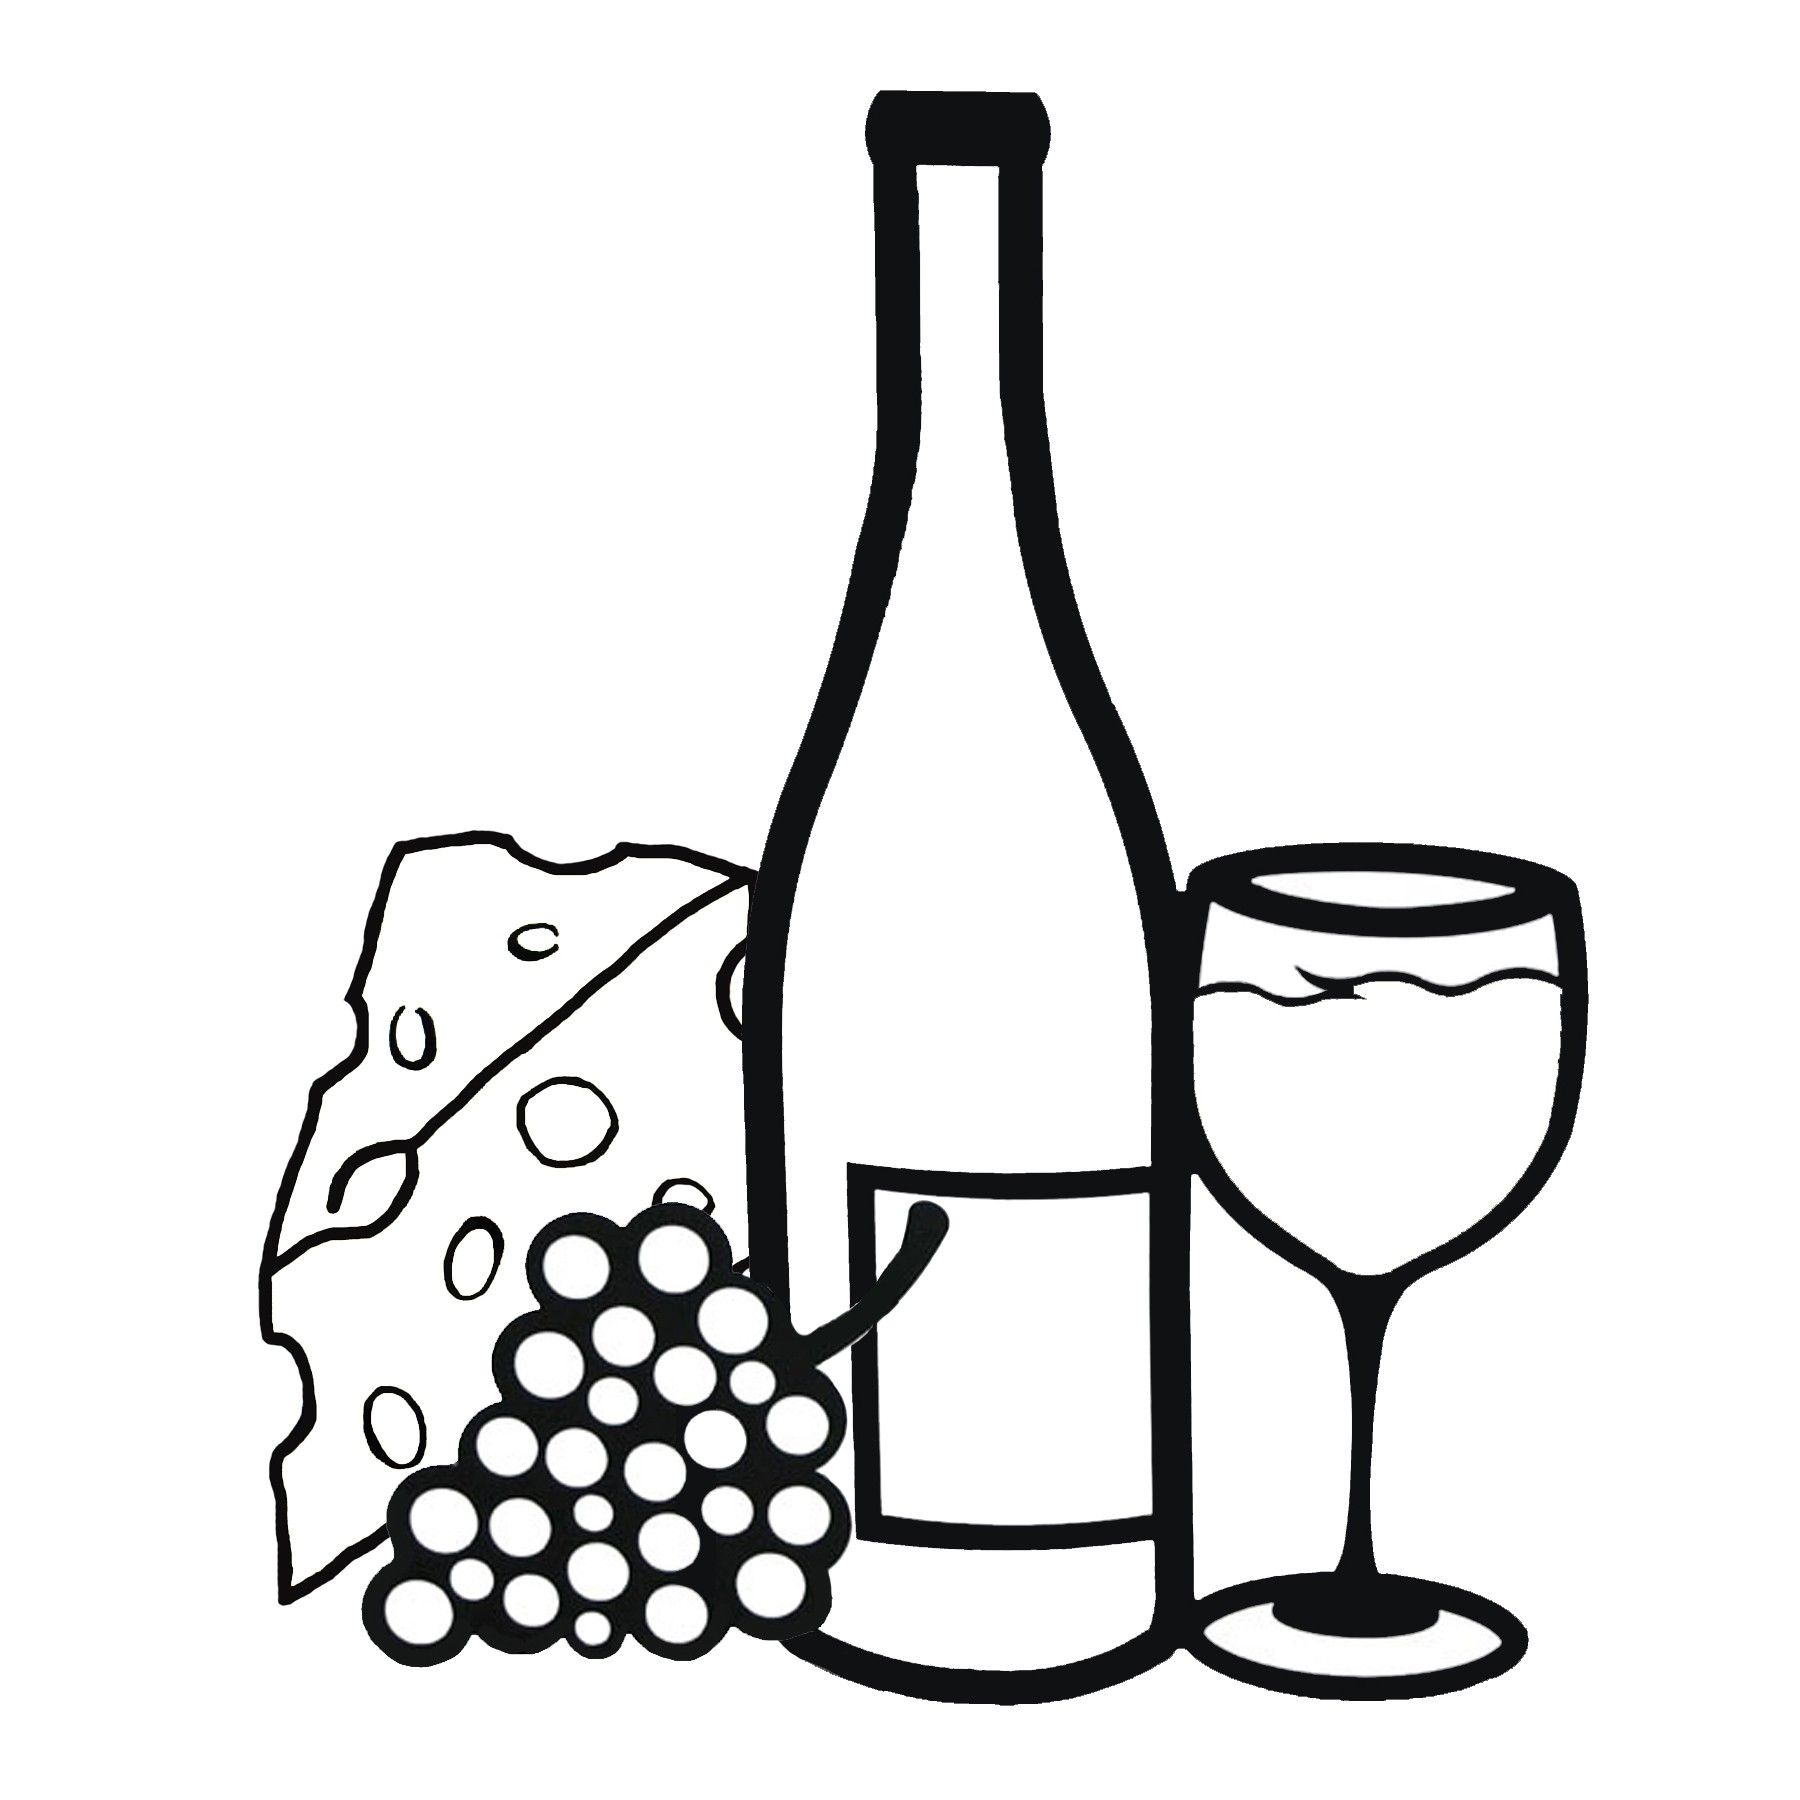 small resolution of images for wine glass and grapes clipart